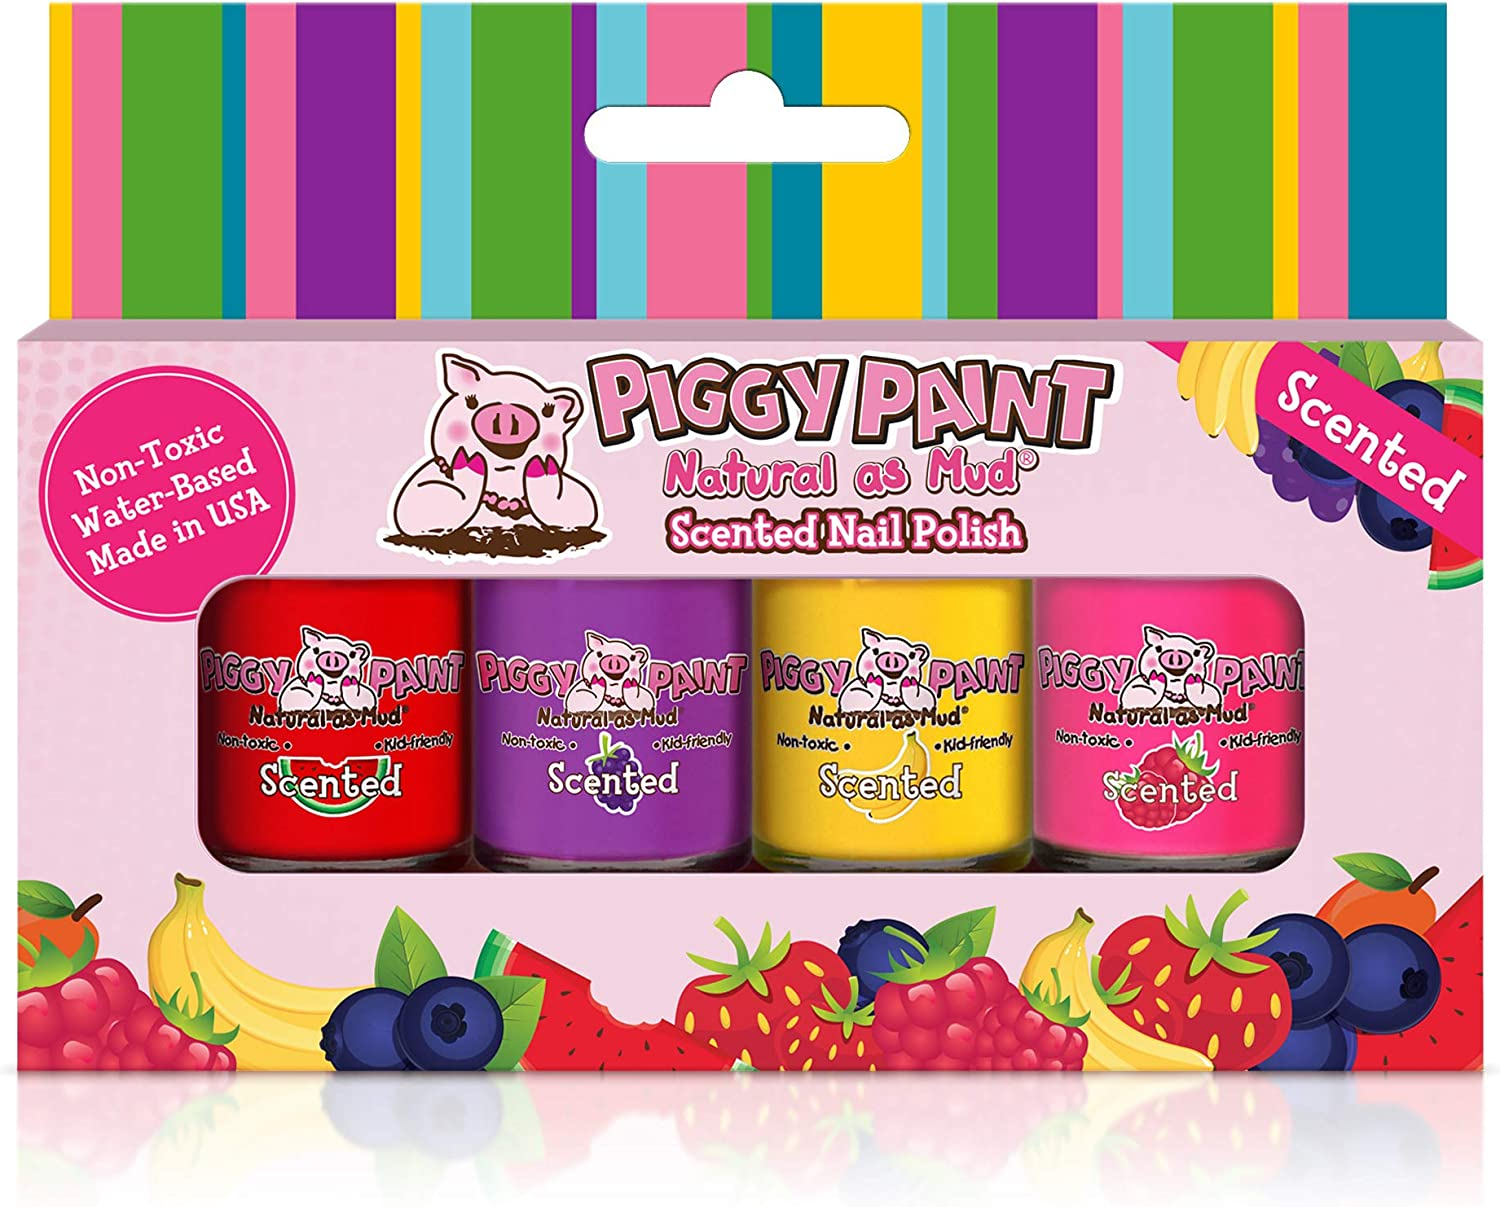 Piggy Paint Scented 100% Non-Toxic Girls Nail Polish - Safe, Chemical Free Low Odor for Kids, 4 Pack Kit (Scented Silly Unicorns)